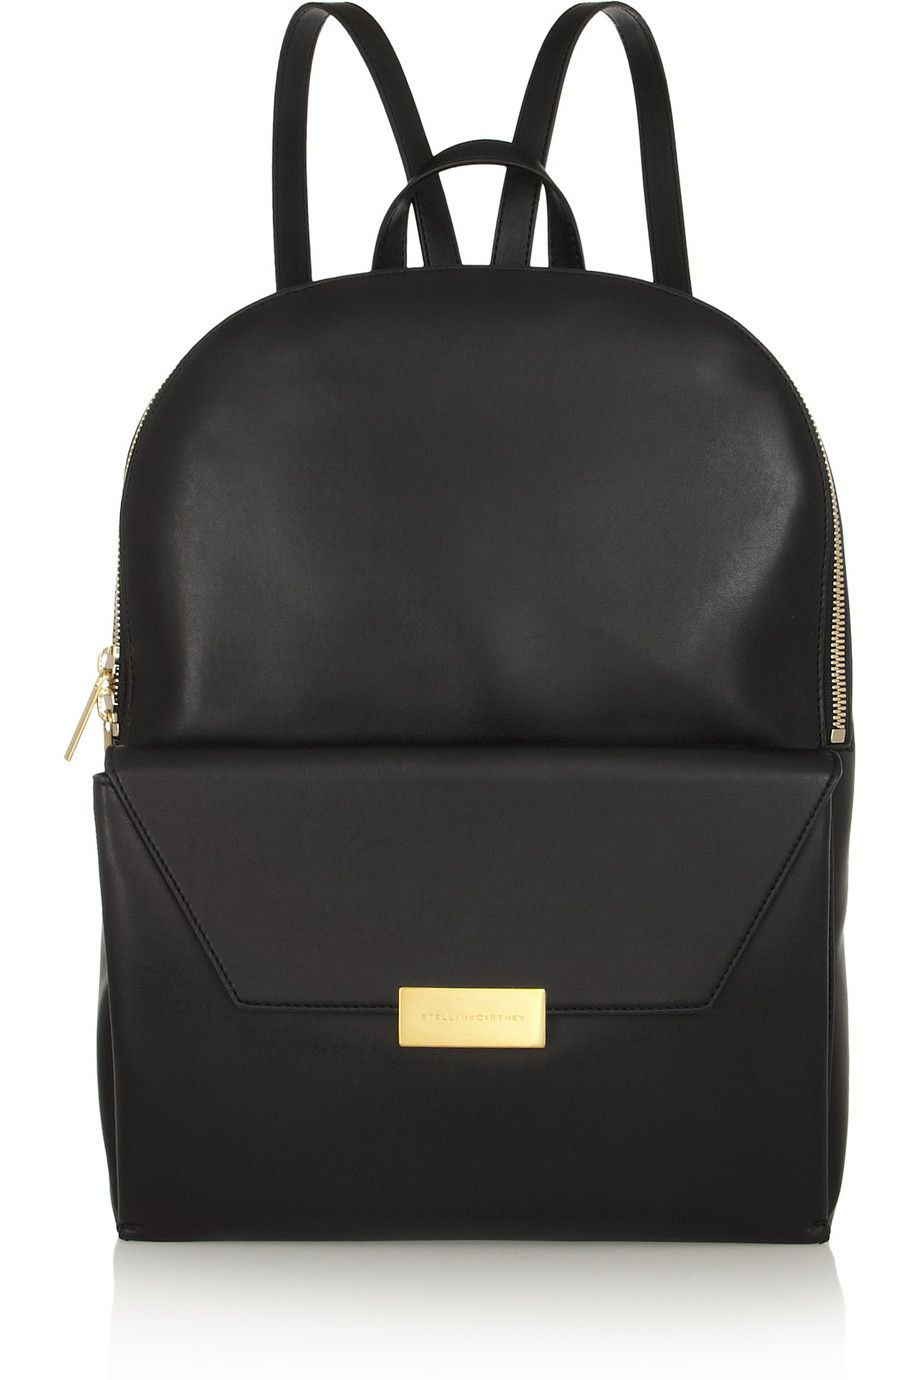 Stella McCartney - Beckett faux leather backpack